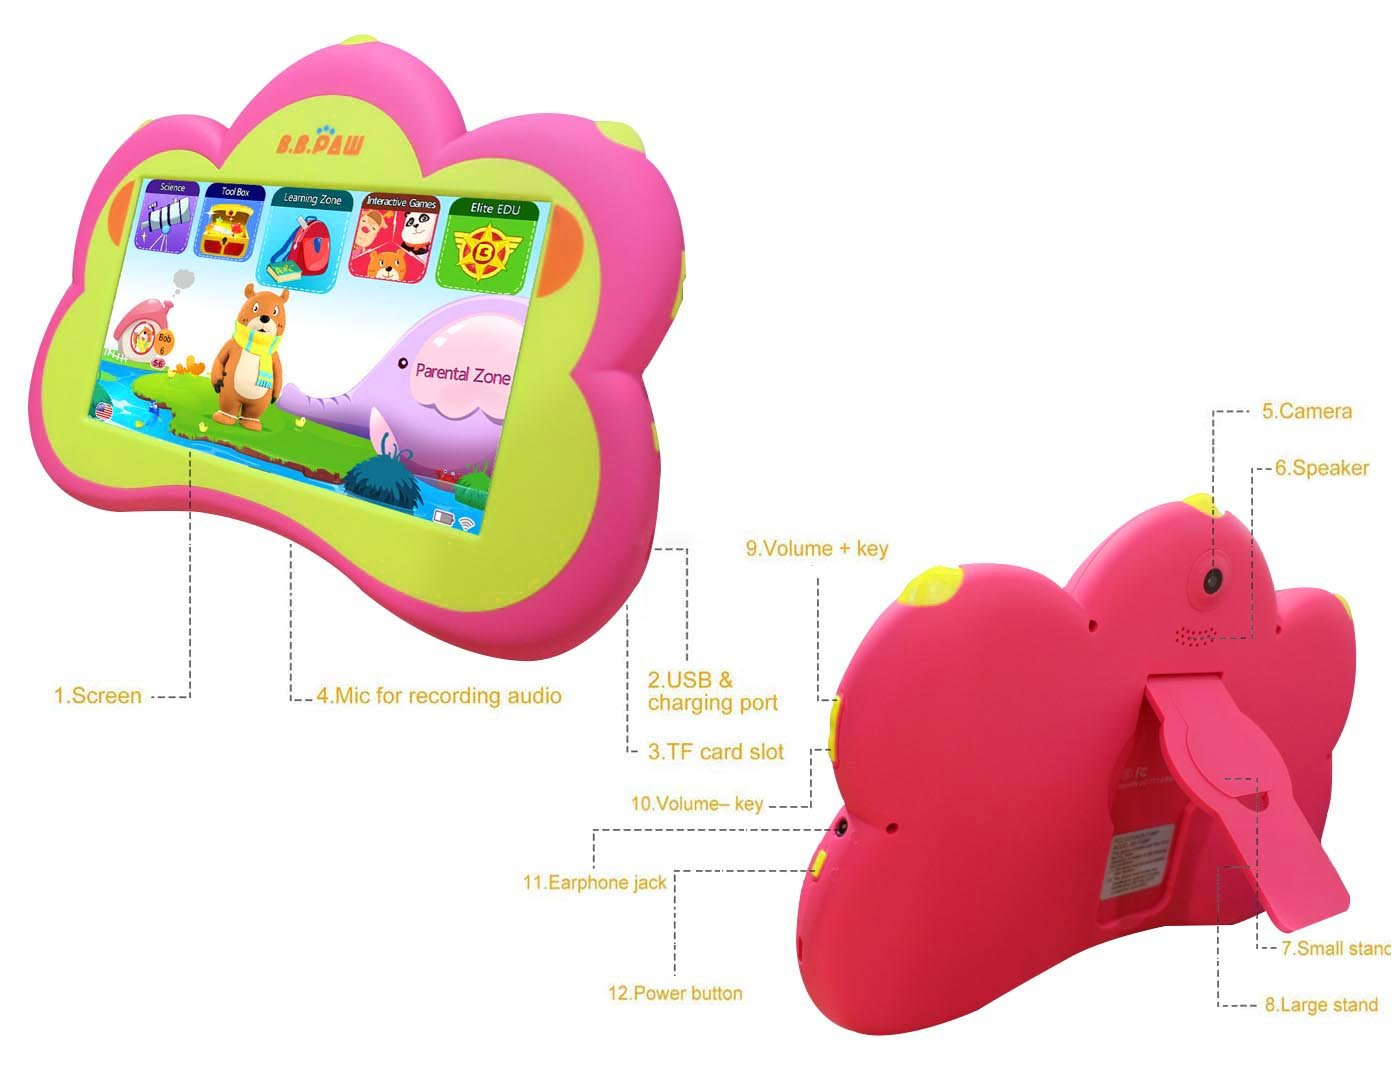 Kids Tablet, B.B.PAW 7'' Whole Brain Education Tablet para niños 2 to 6 Years Old with 90+ Preloaded Learning and Training Apps-Candy Pink by B.B.PAW  (Image #6)